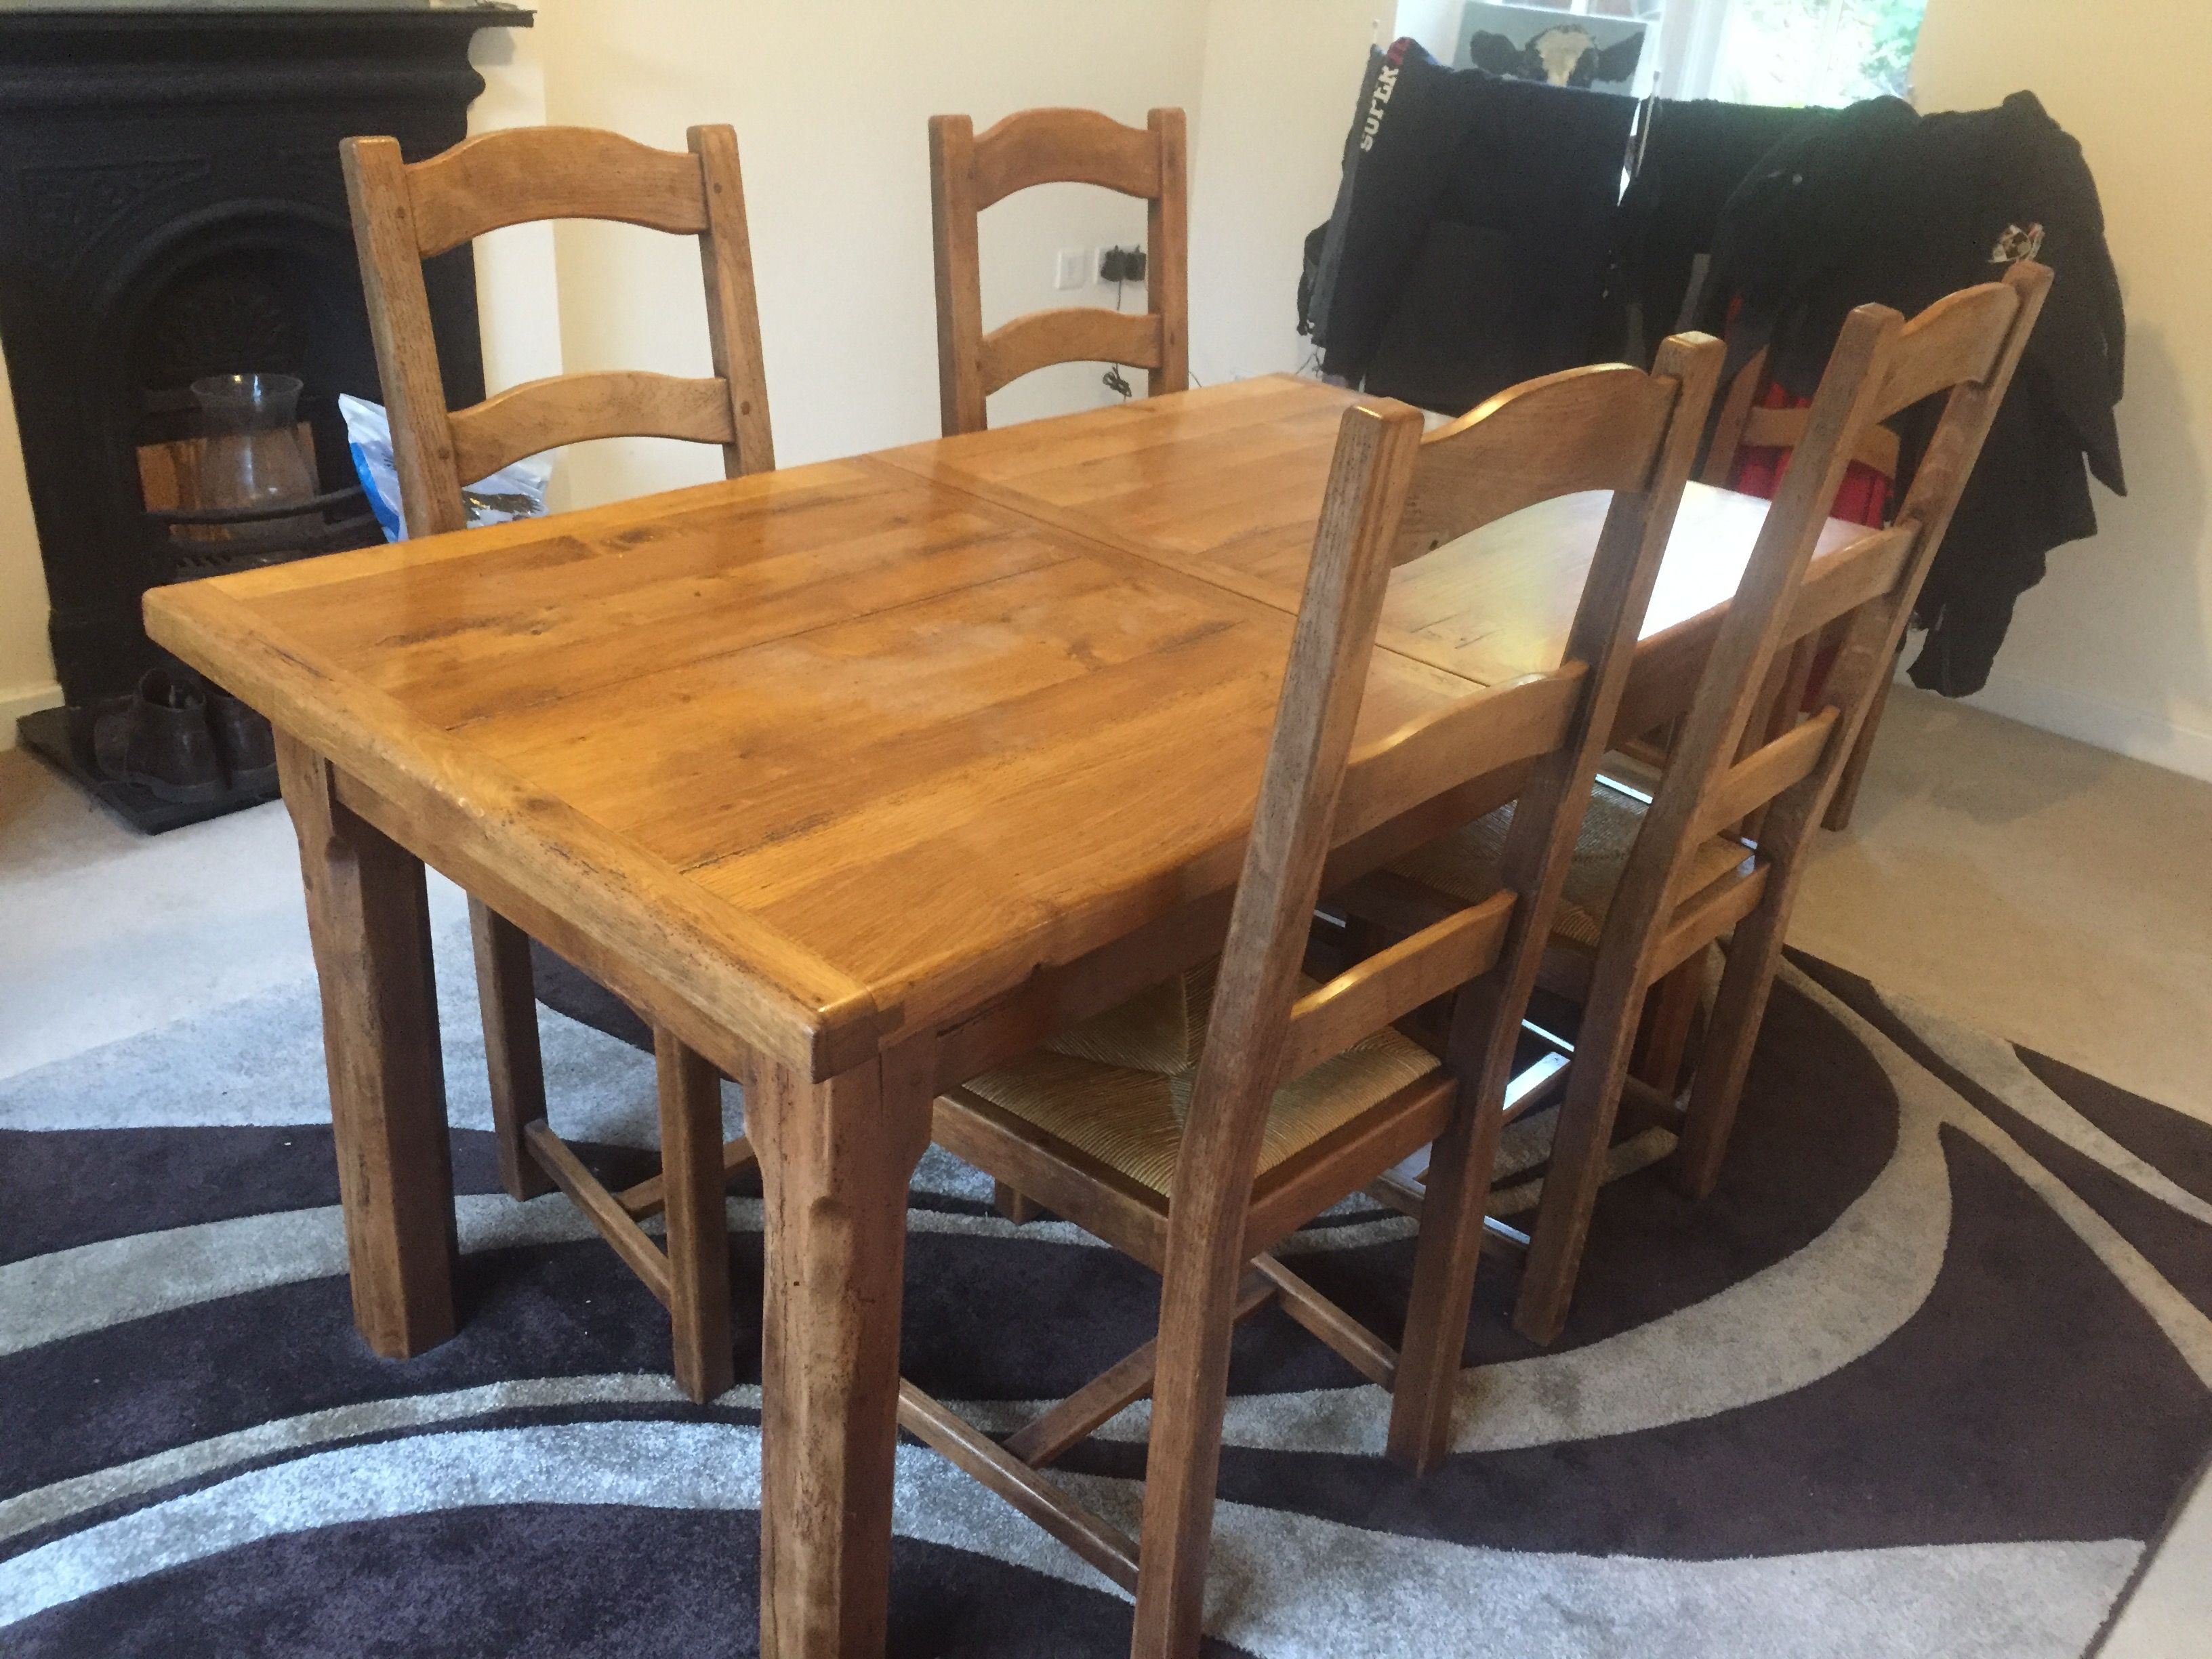 Existing Dining Table 150 X 85 75